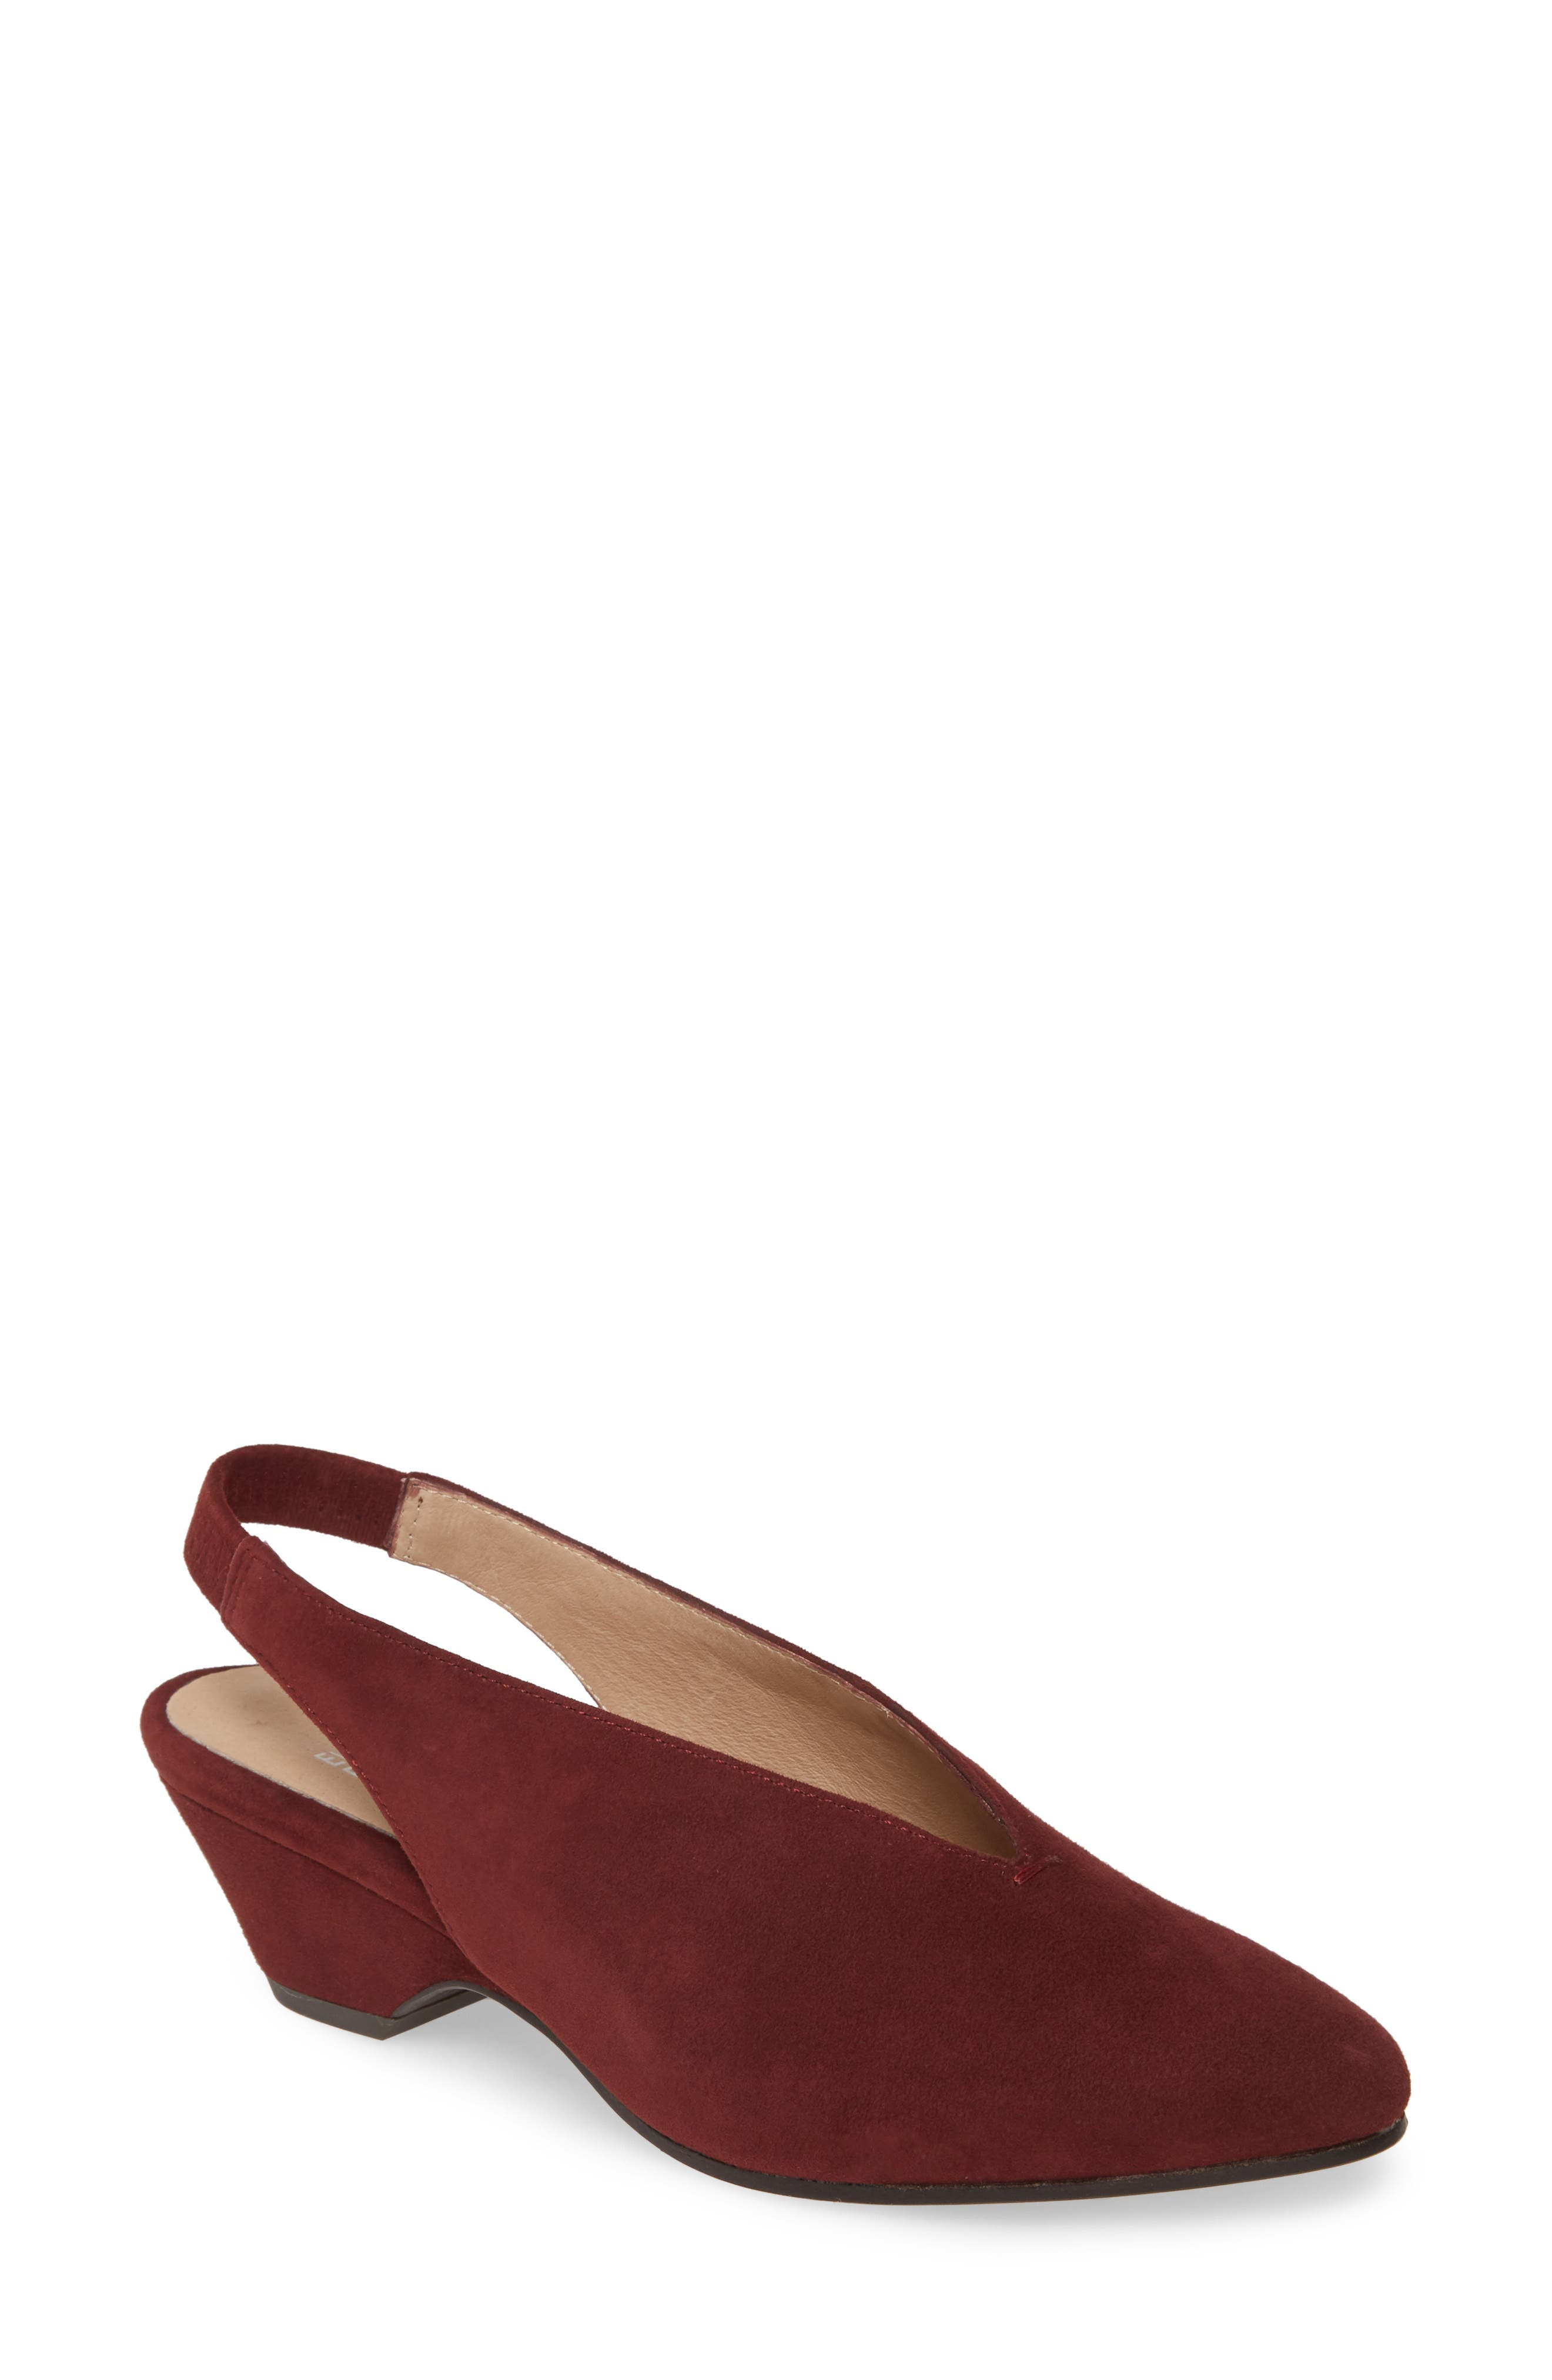 1940s Style Shoes, 40s Shoes Womens Eileen Fisher Gatwick Slingback Pump Size 6.5 M - Red $77.98 AT vintagedancer.com